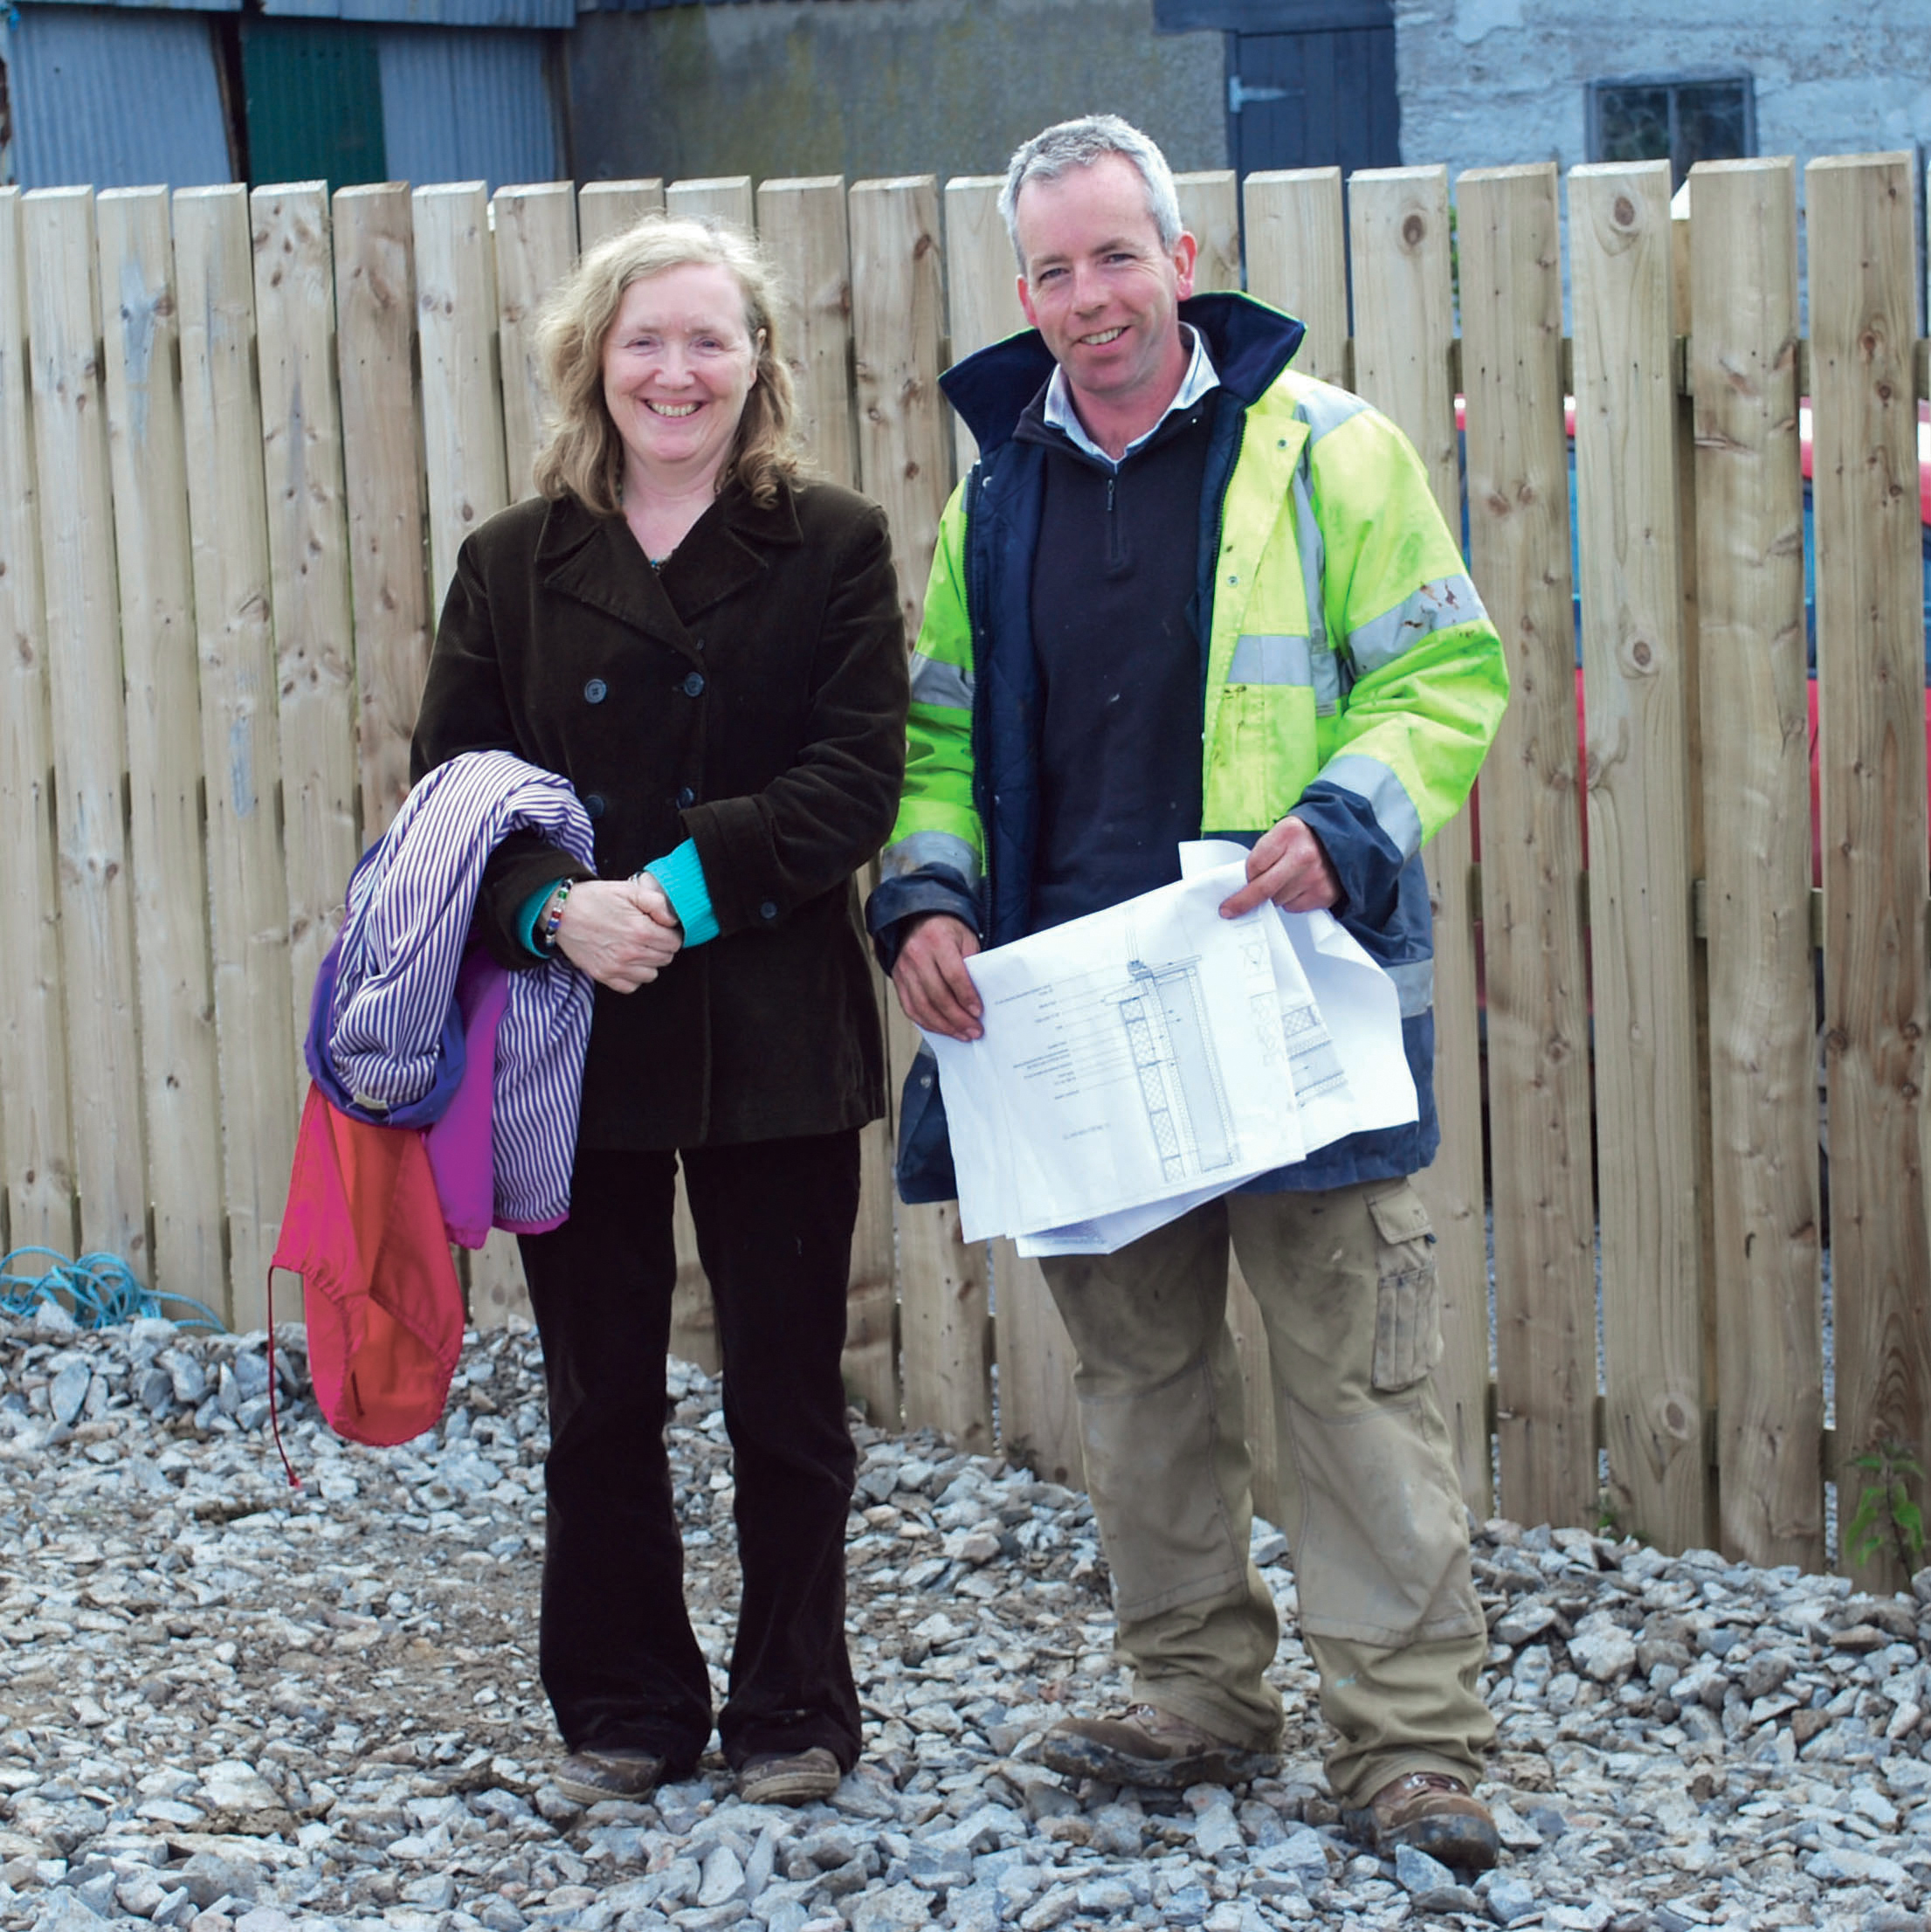 Helen our client with Kevin the builder